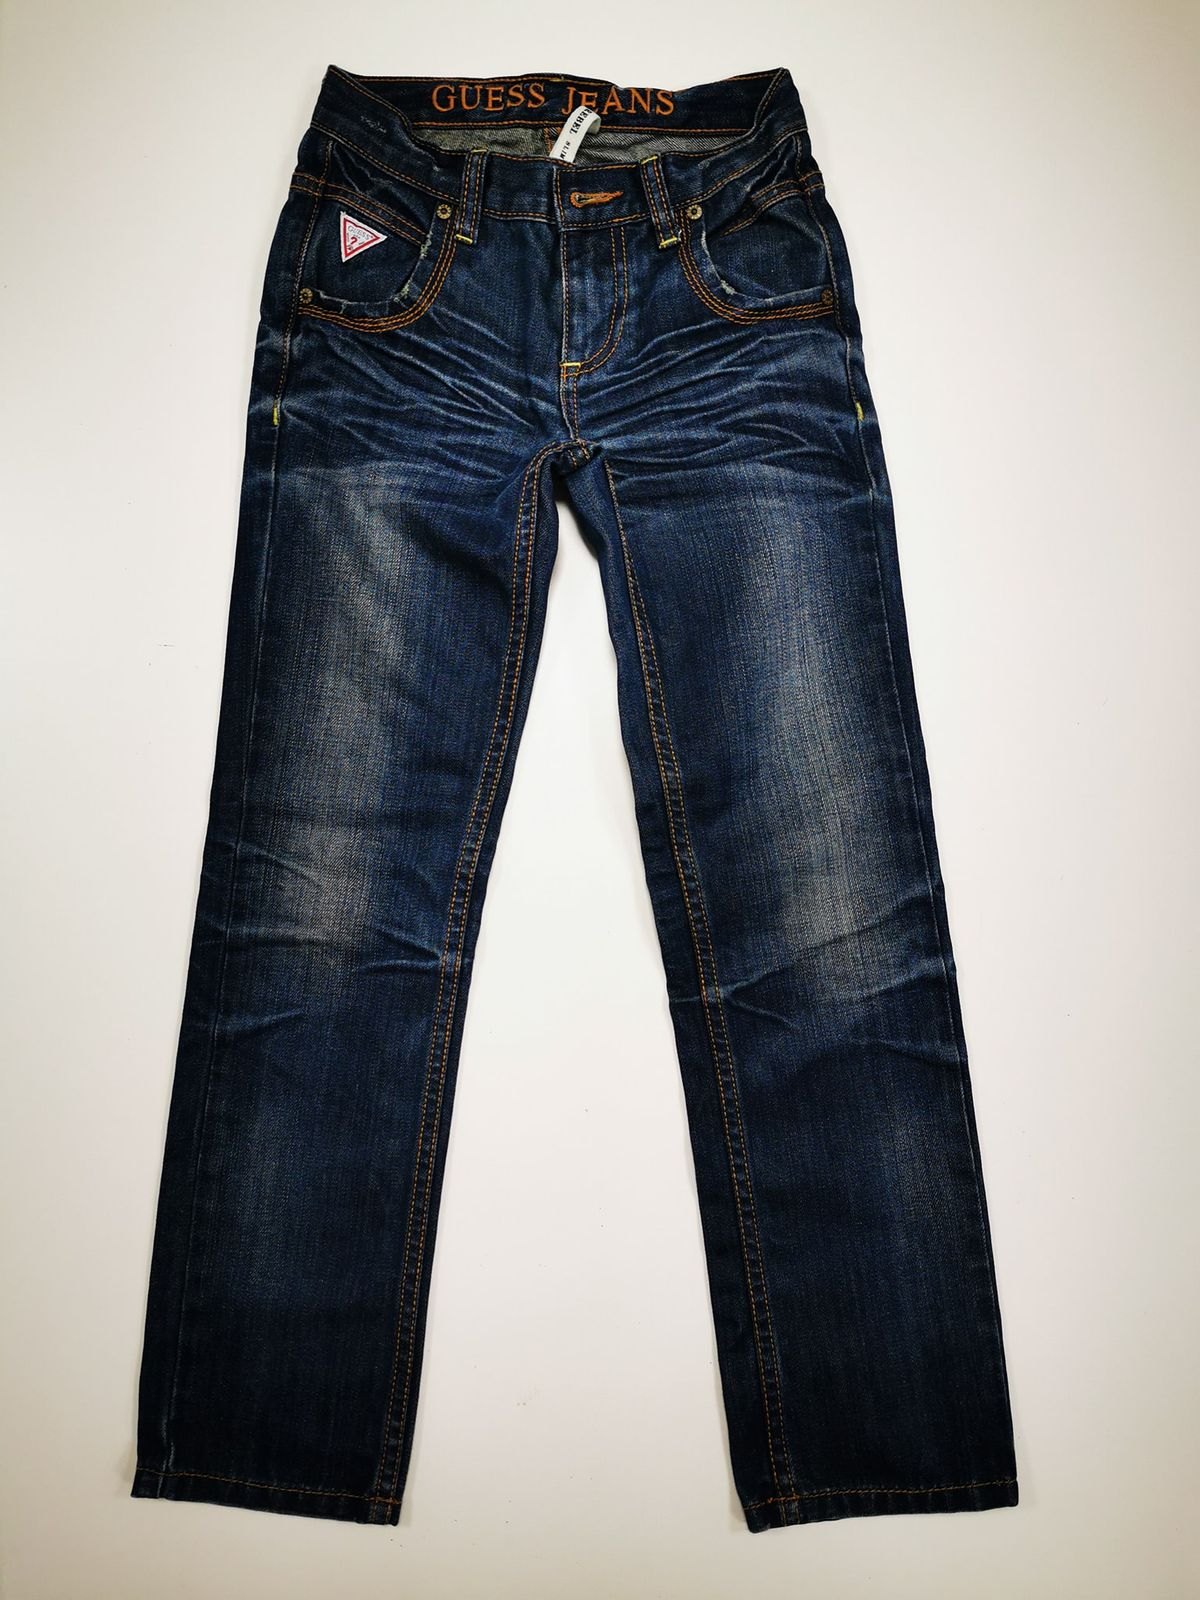 Guess Jeans 8/9 anni € 24,00 11860